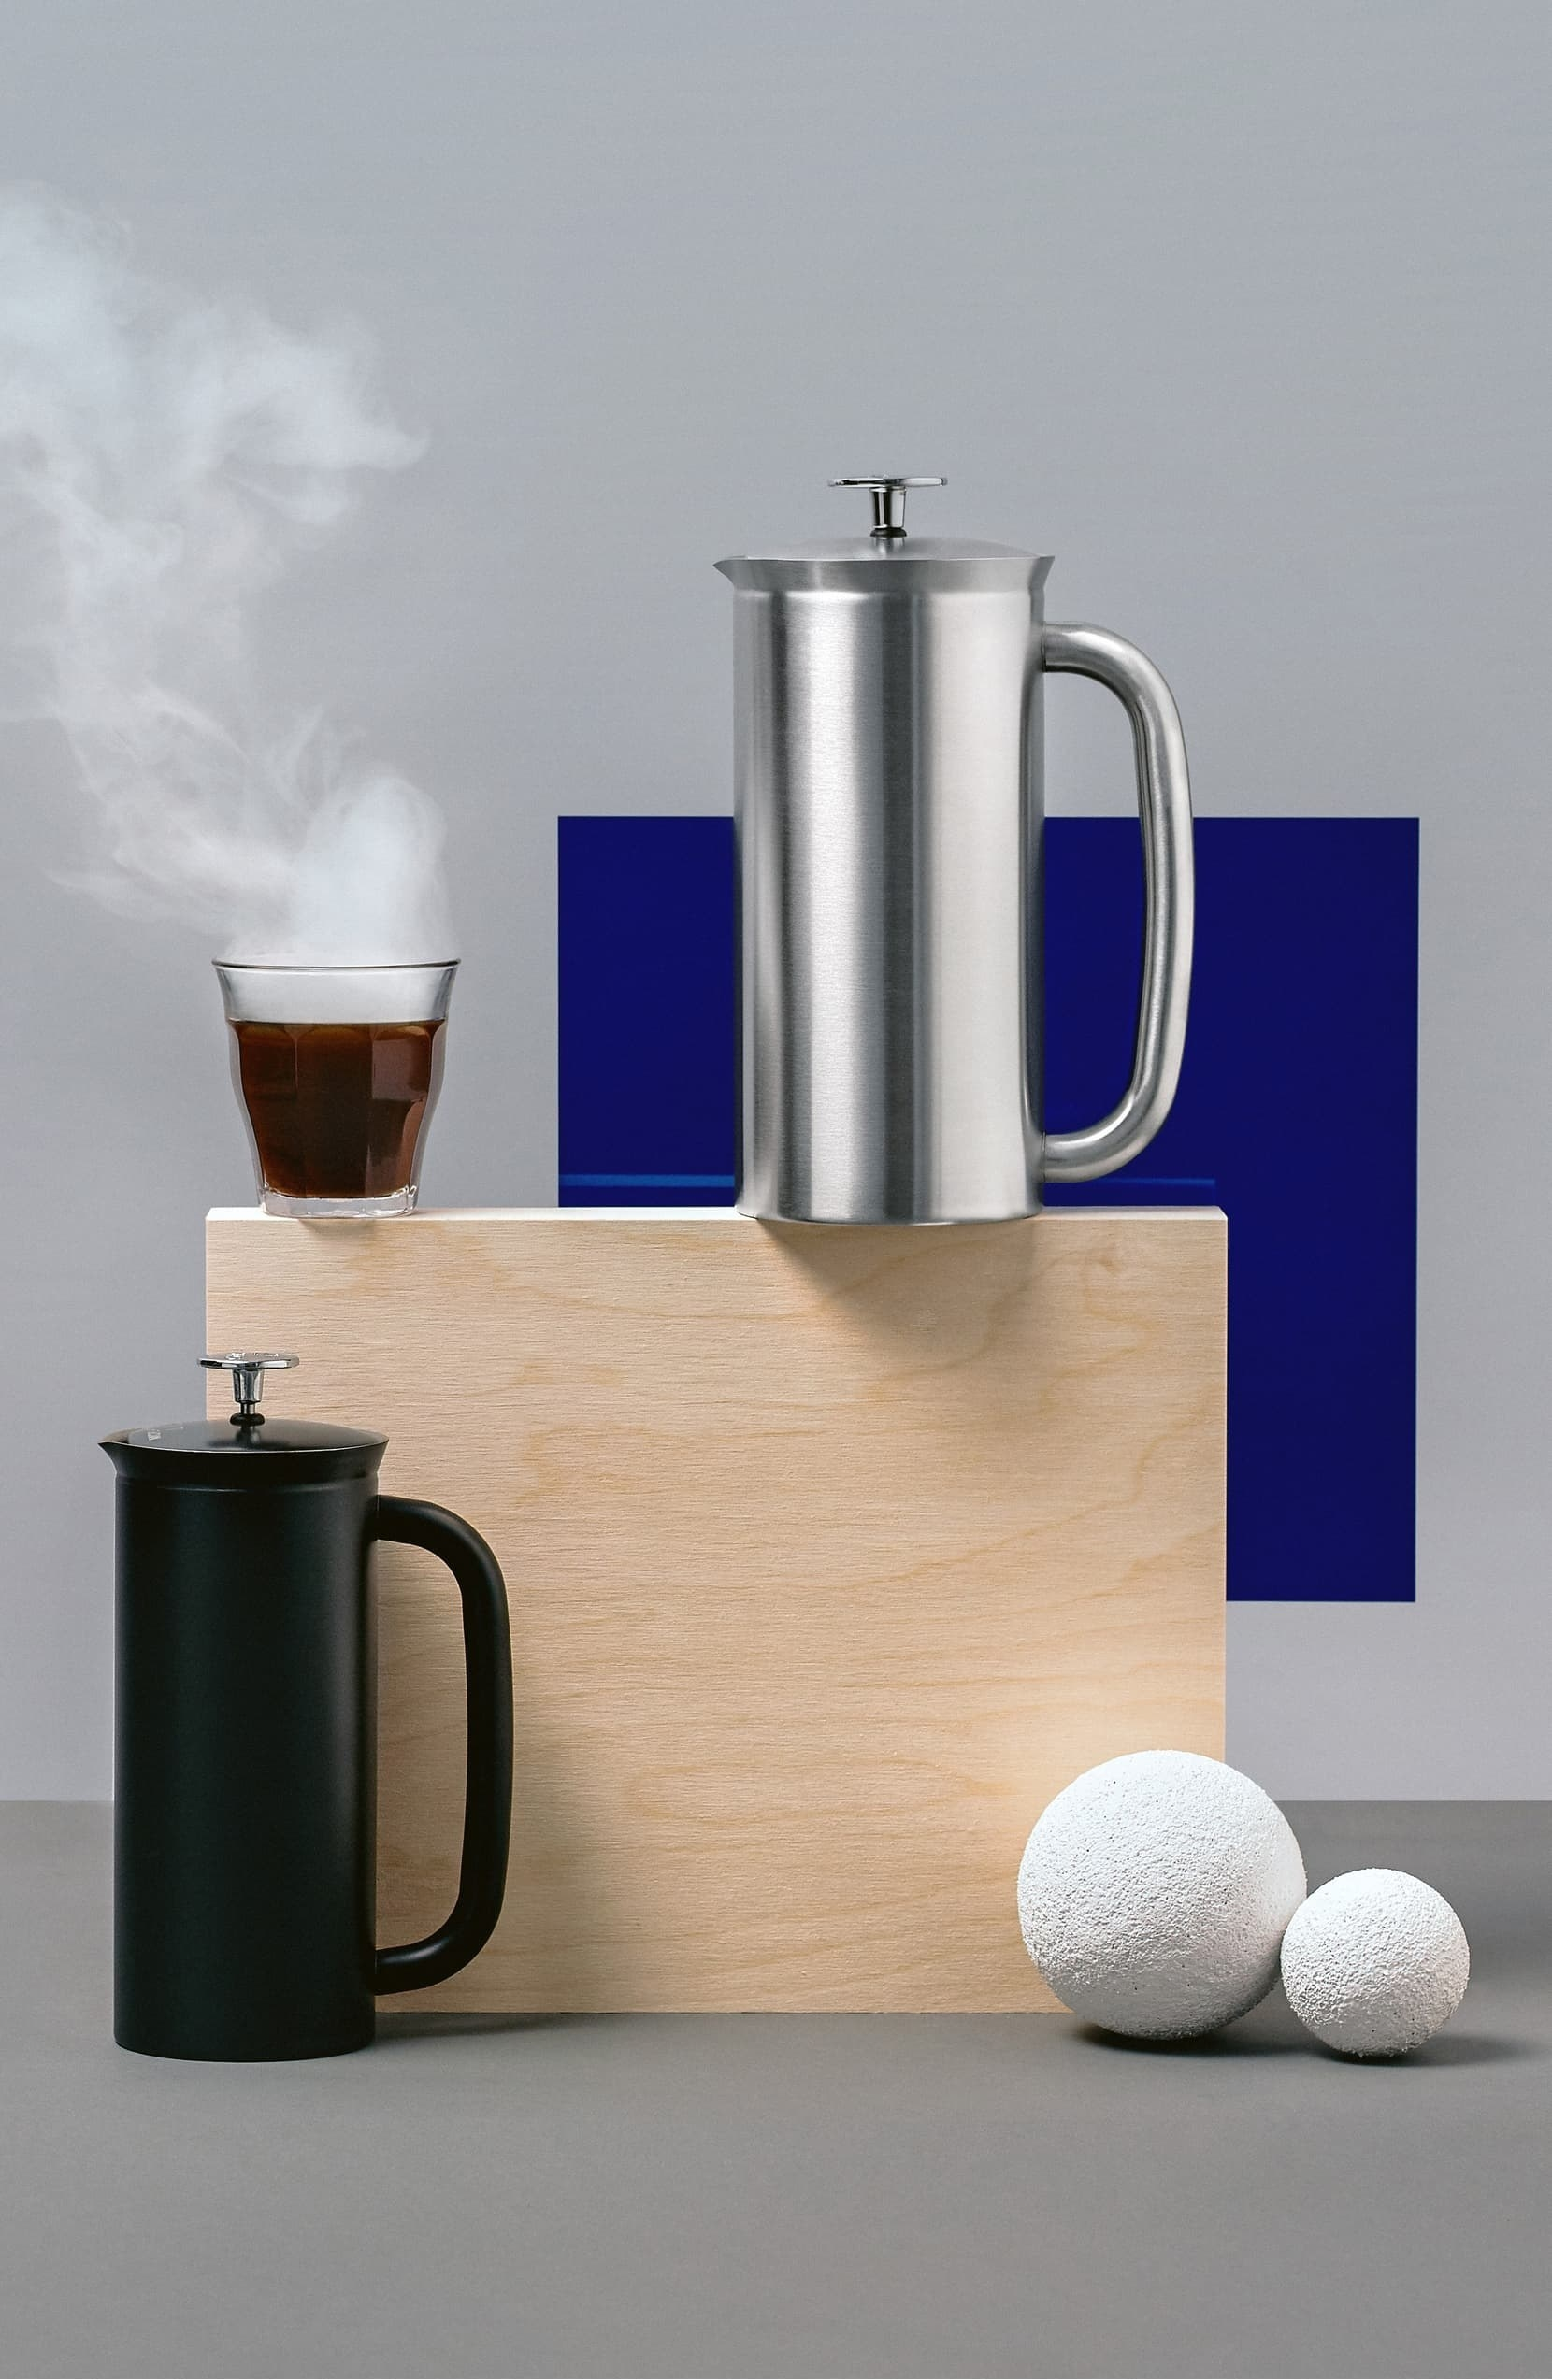 Black French press and stainless steel French press displayed on wood block with coffee